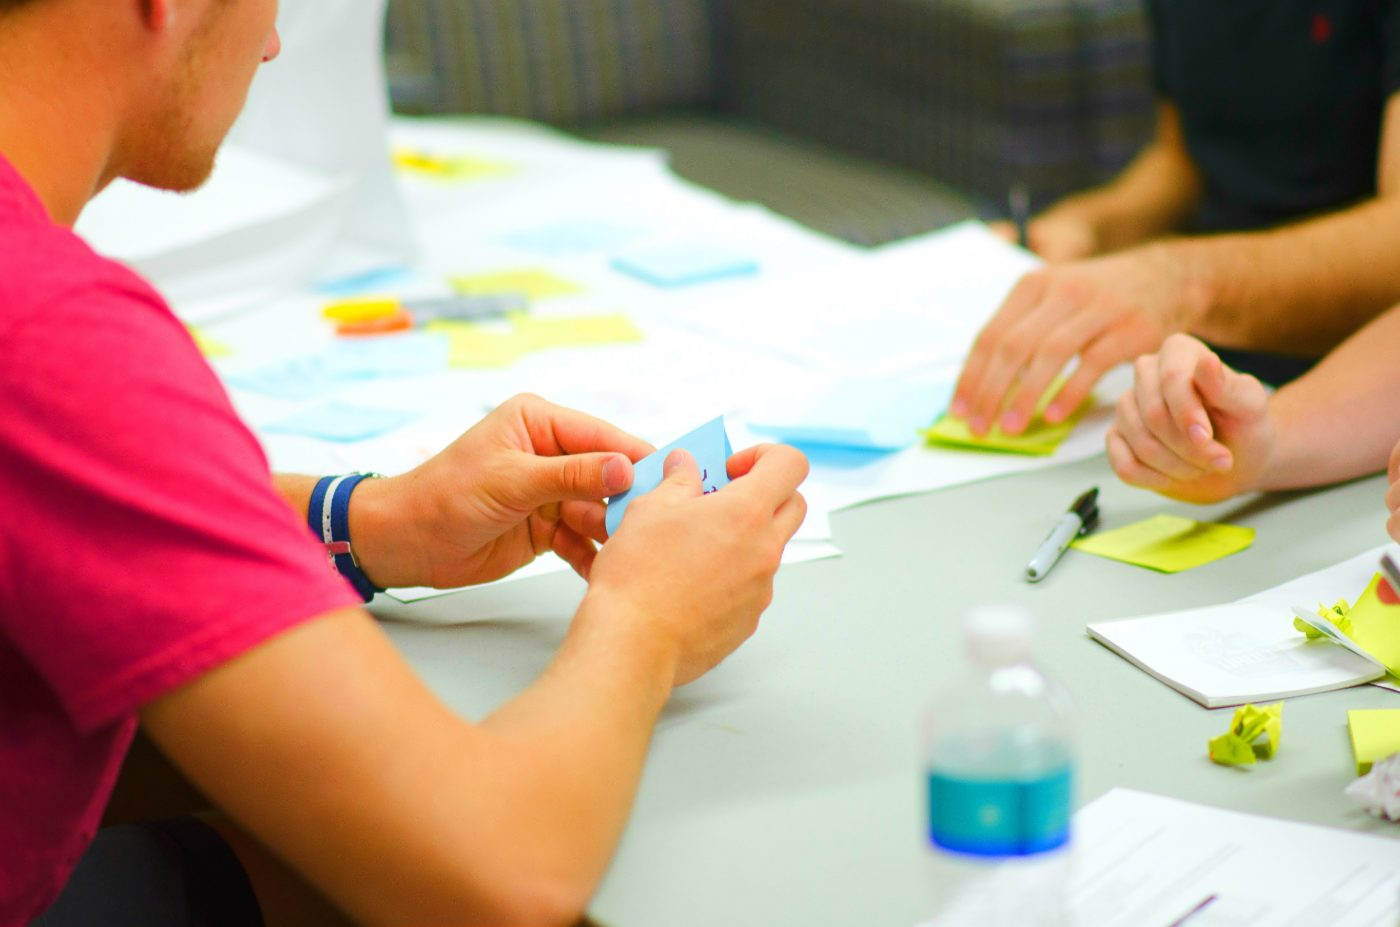 Start Up Your Tech Startup: Marketing Ideas for Young IT Companies